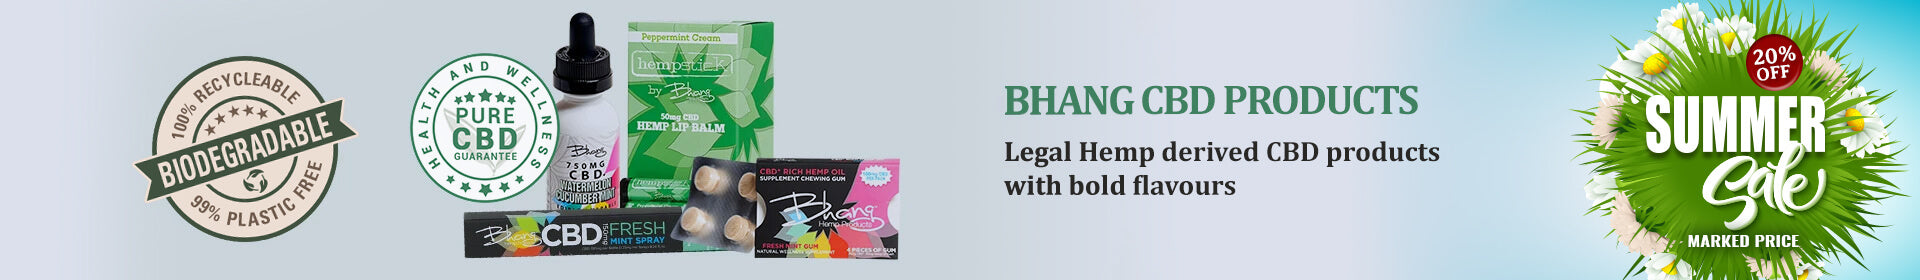 Bhang Group CBD Products